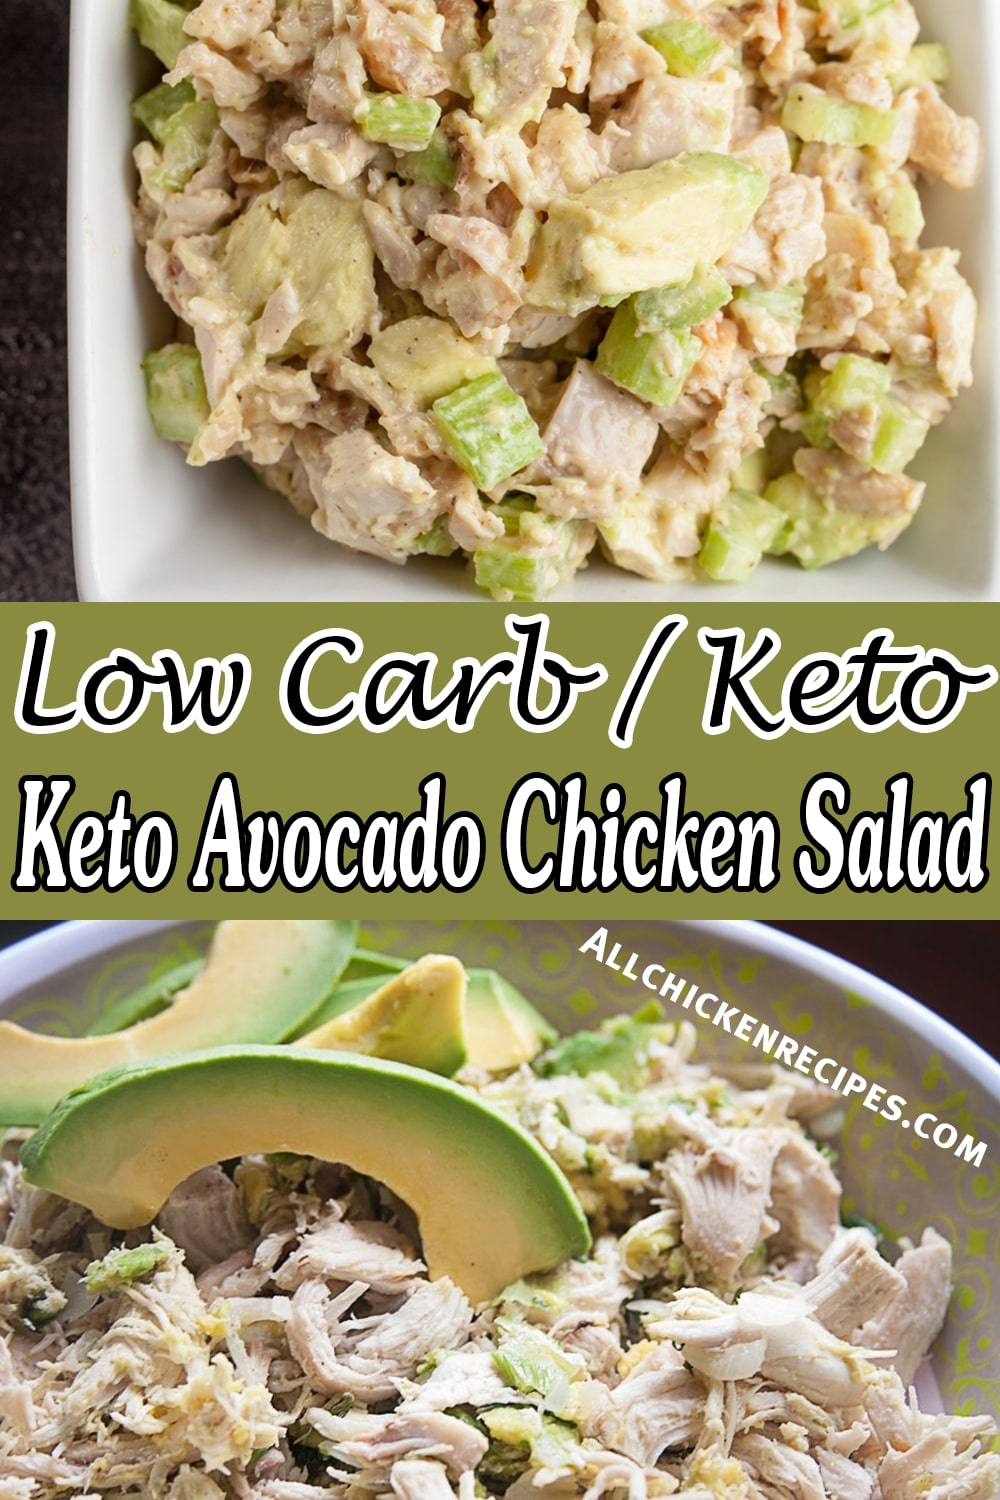 keto avocado and chicken salad